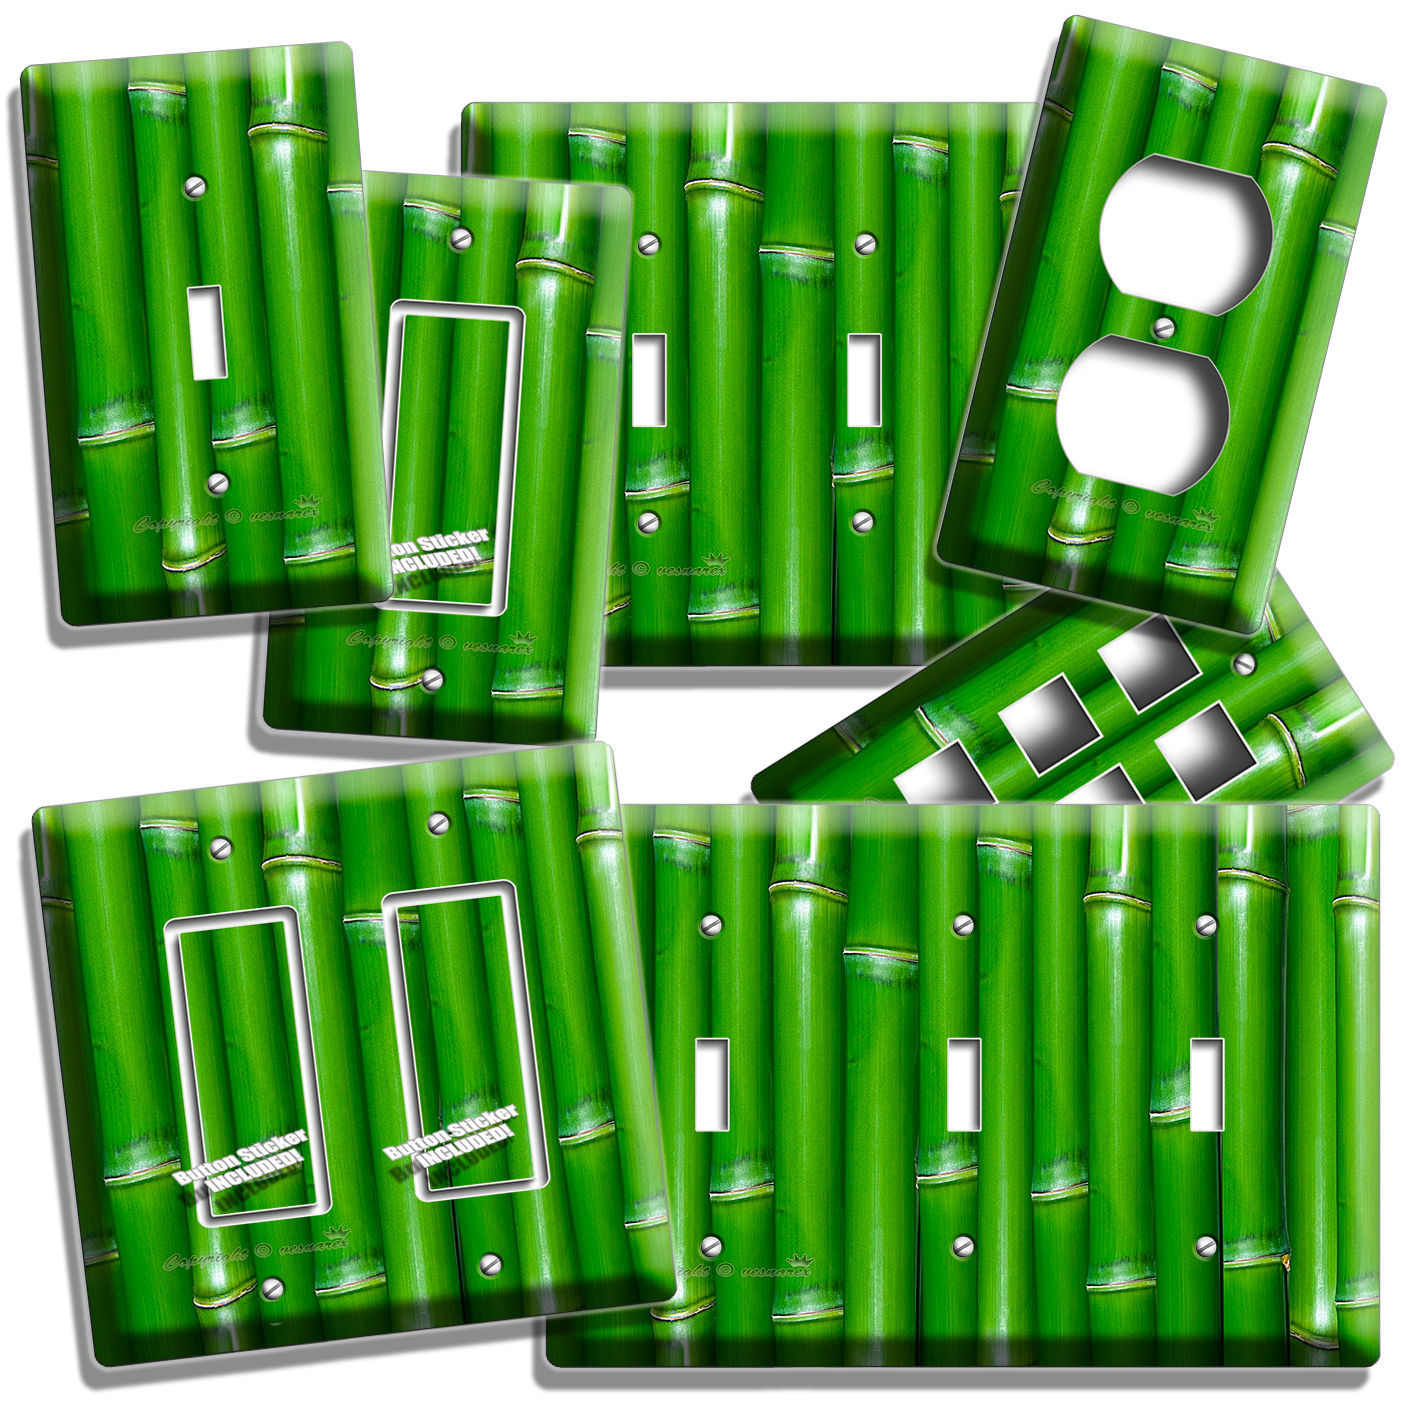 GREEN LUCKY BAMBOO LIGHTSWITCH OUTLET WALL PLATE ROOM HOME FENG SHUI HOUSE DECOR